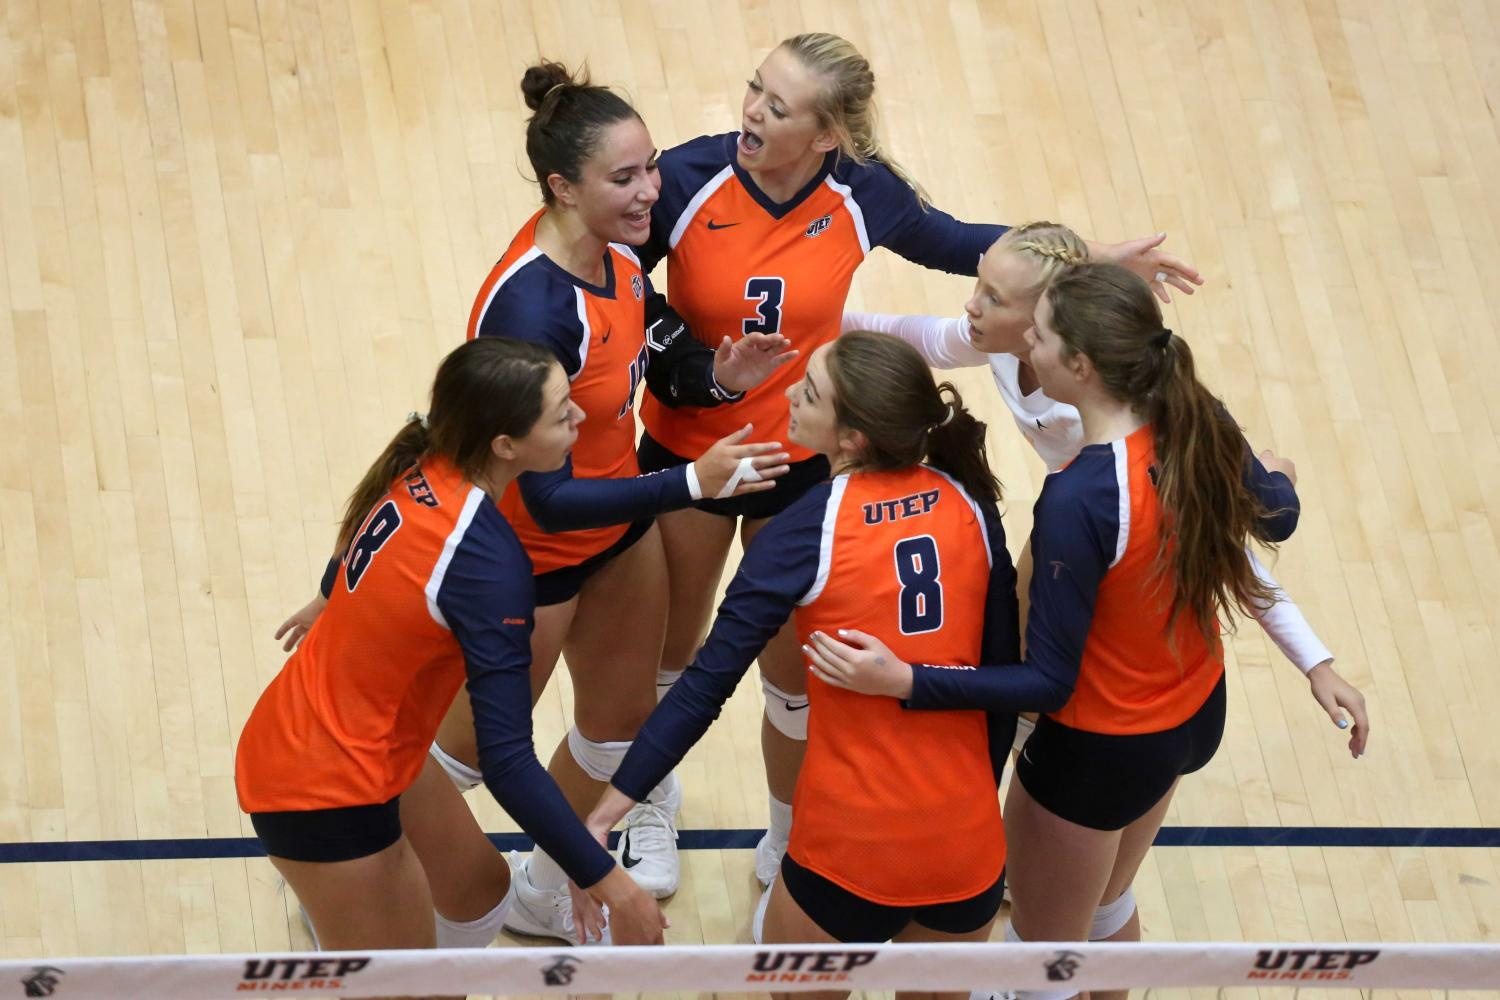 Miners shutout Middle Tennessee on Senior Day